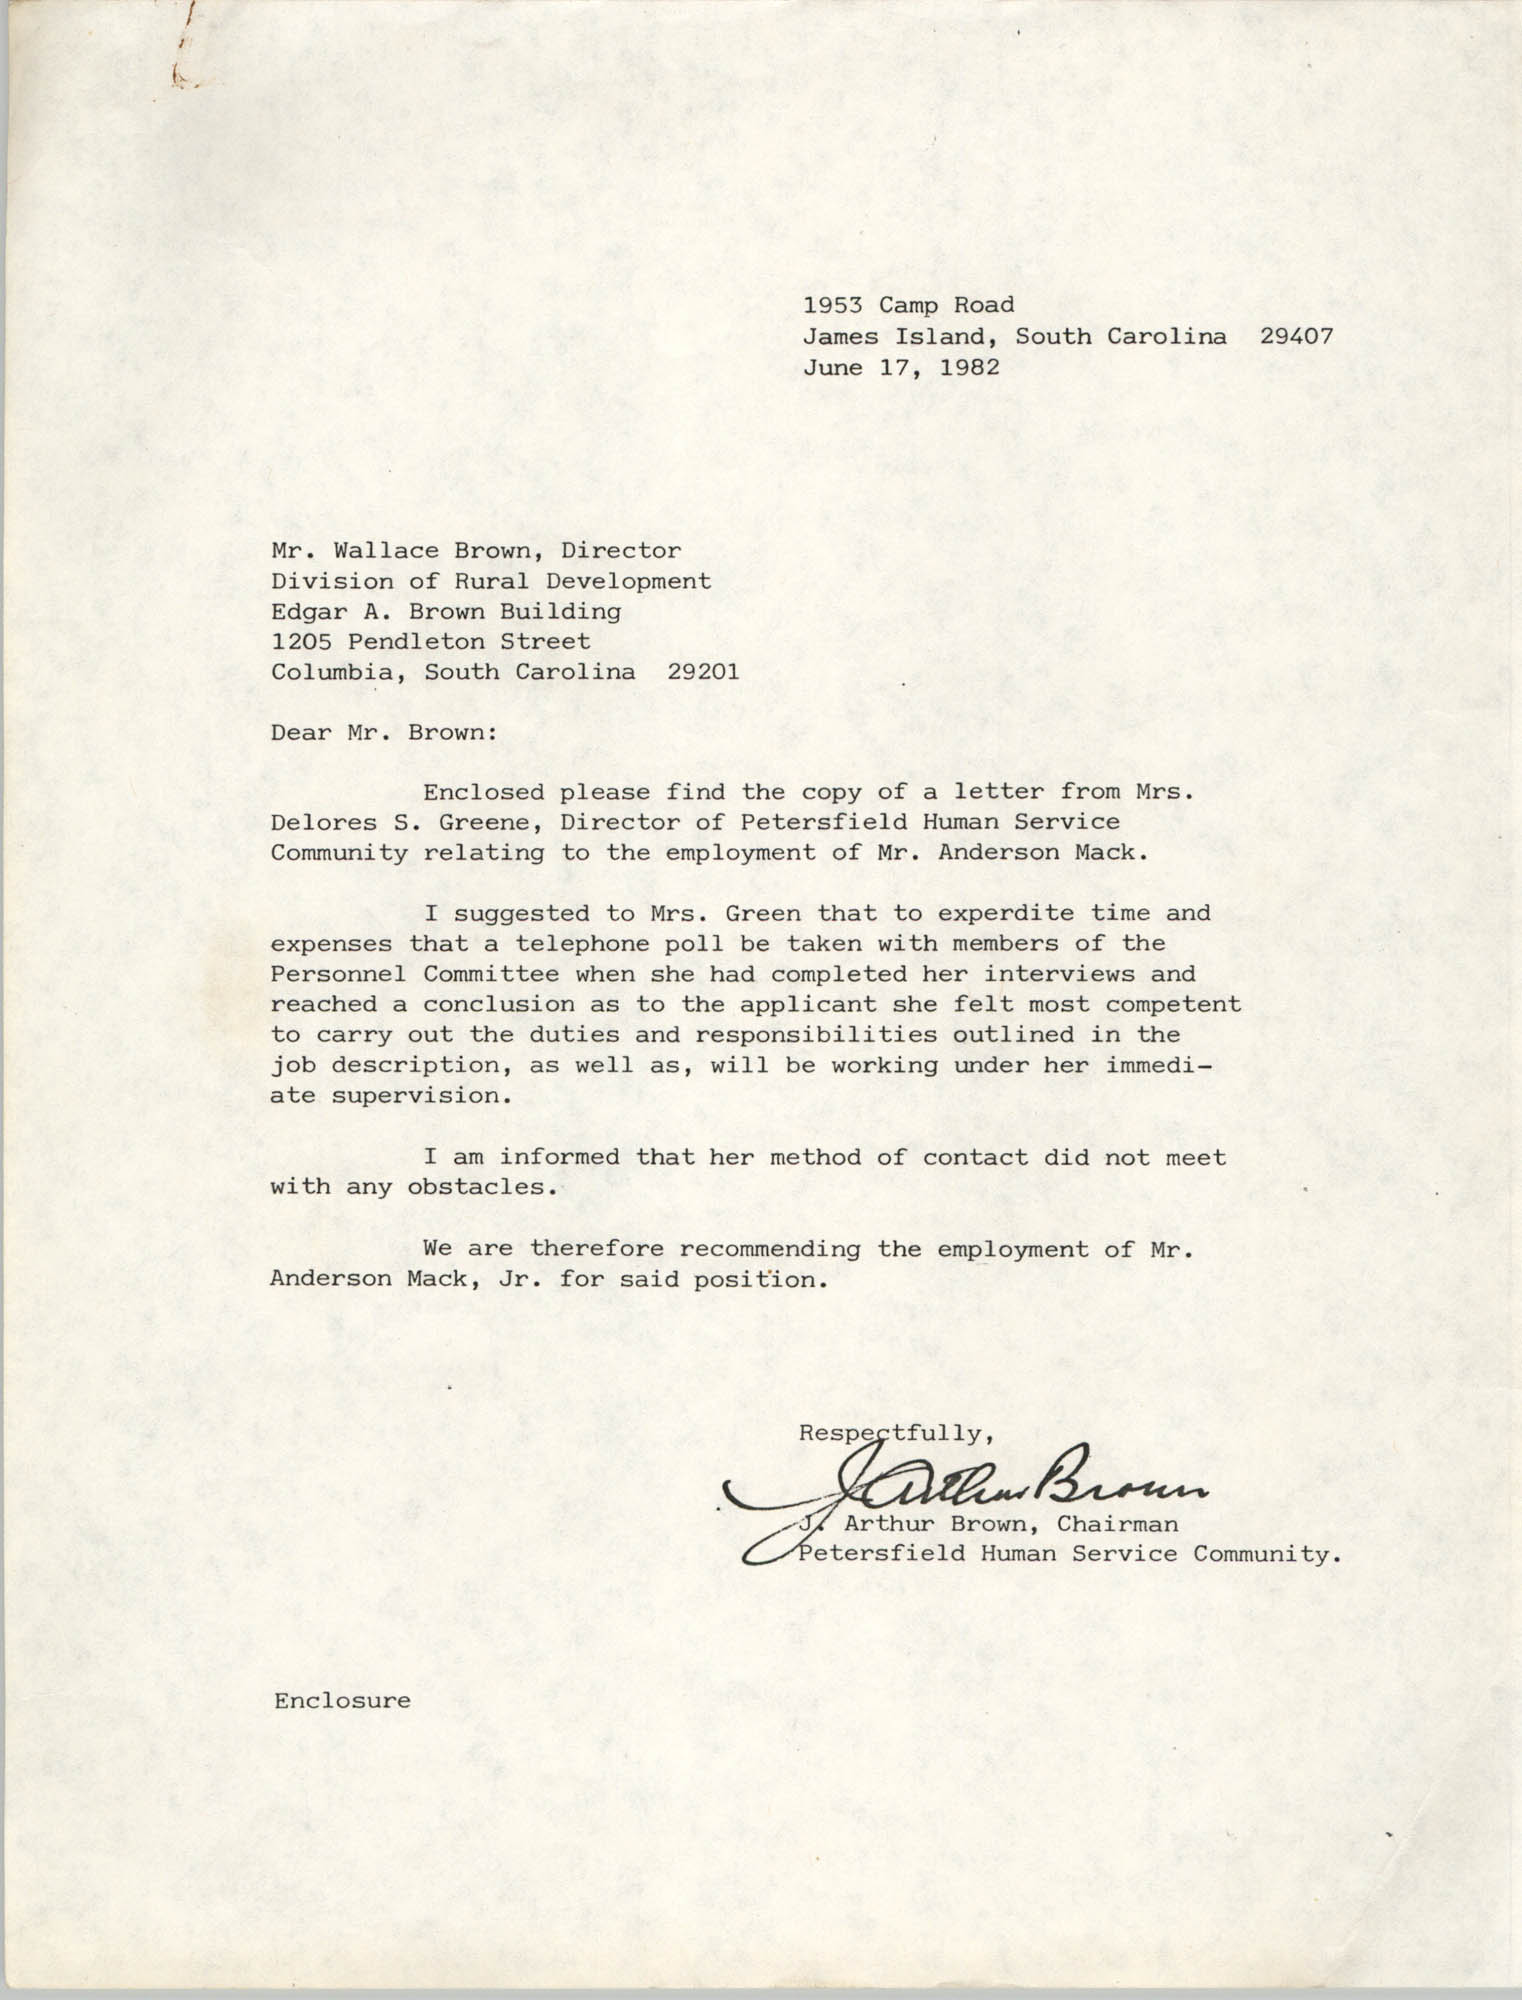 Letter from Wallace Brown to J. Arthur Brown, June 17, 1982